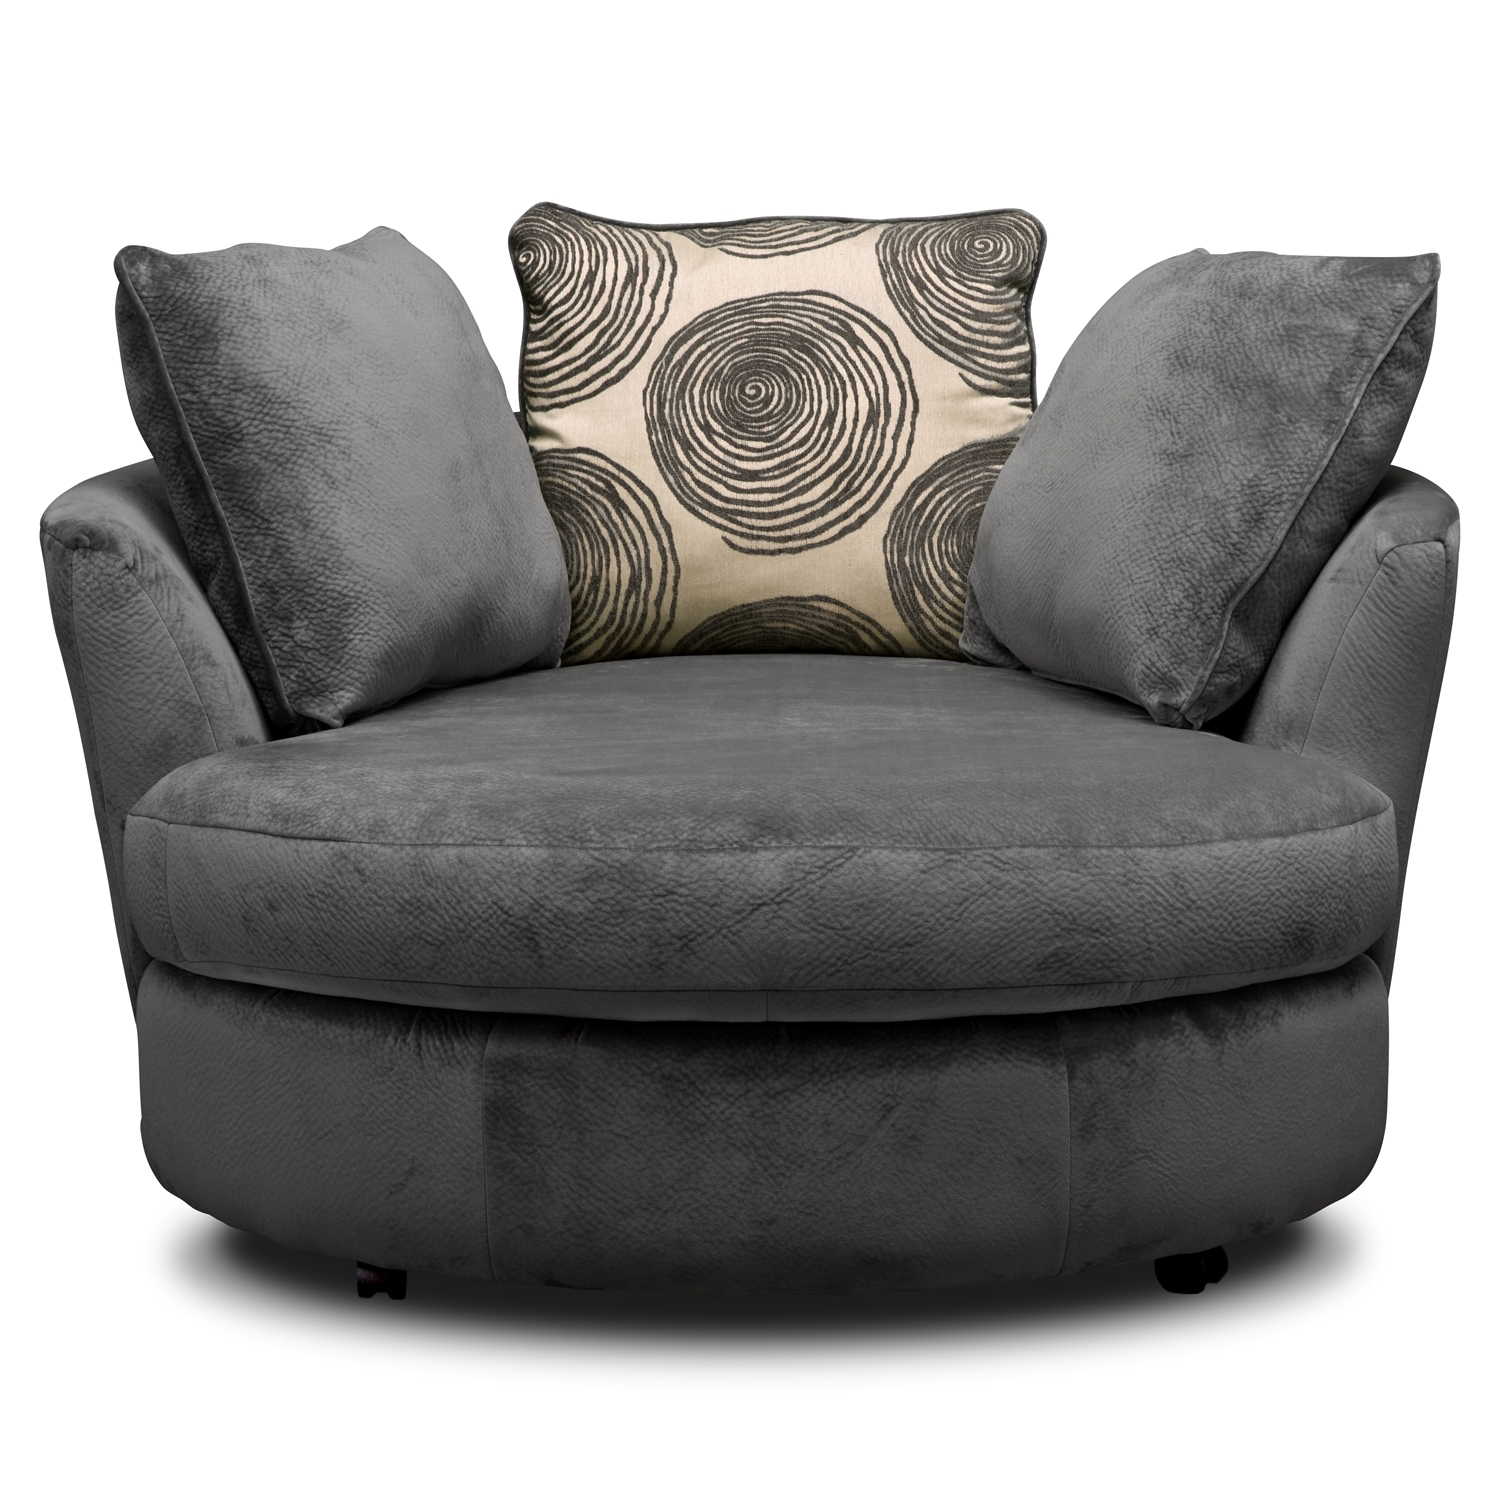 Lovely Swivel Sofa Chair 45 On Living Room Sofa Inspiration With For Sofa With Swivel Chair (View 9 of 15)